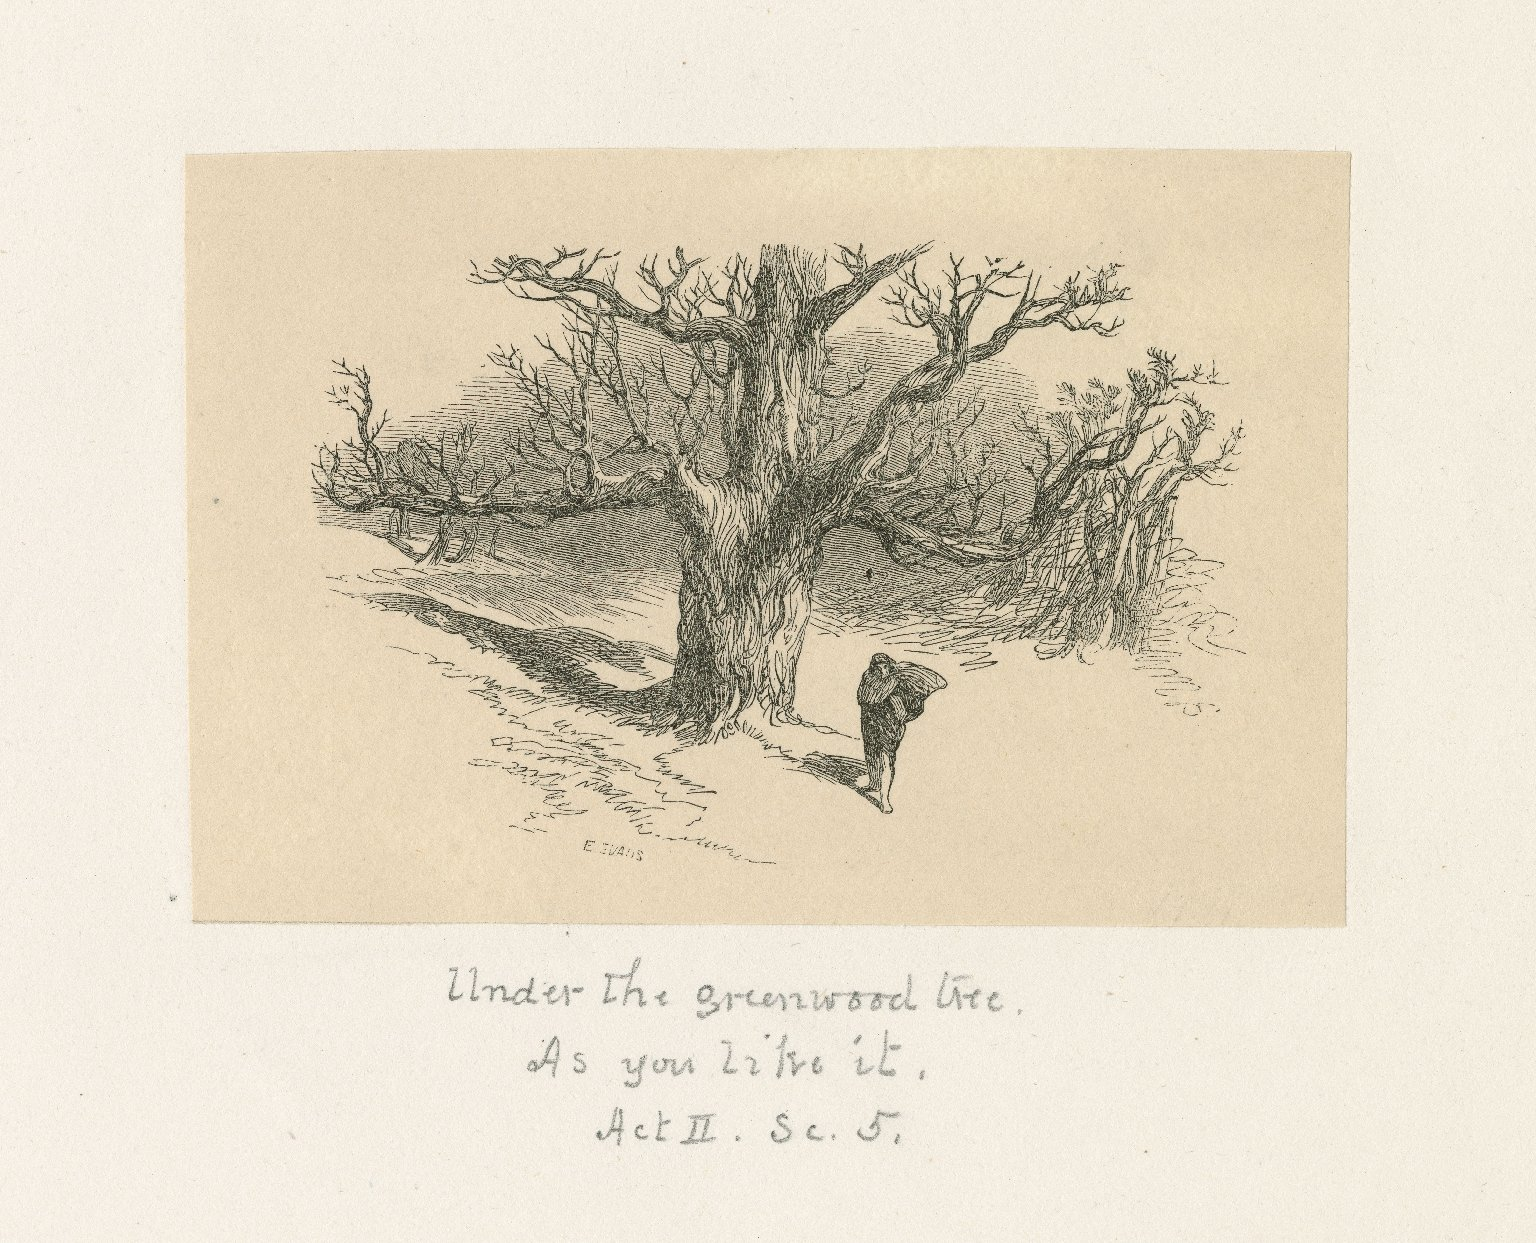 Under the greenwood tree [graphic] : As you like it, act II, sc. 5 / E. Evans.